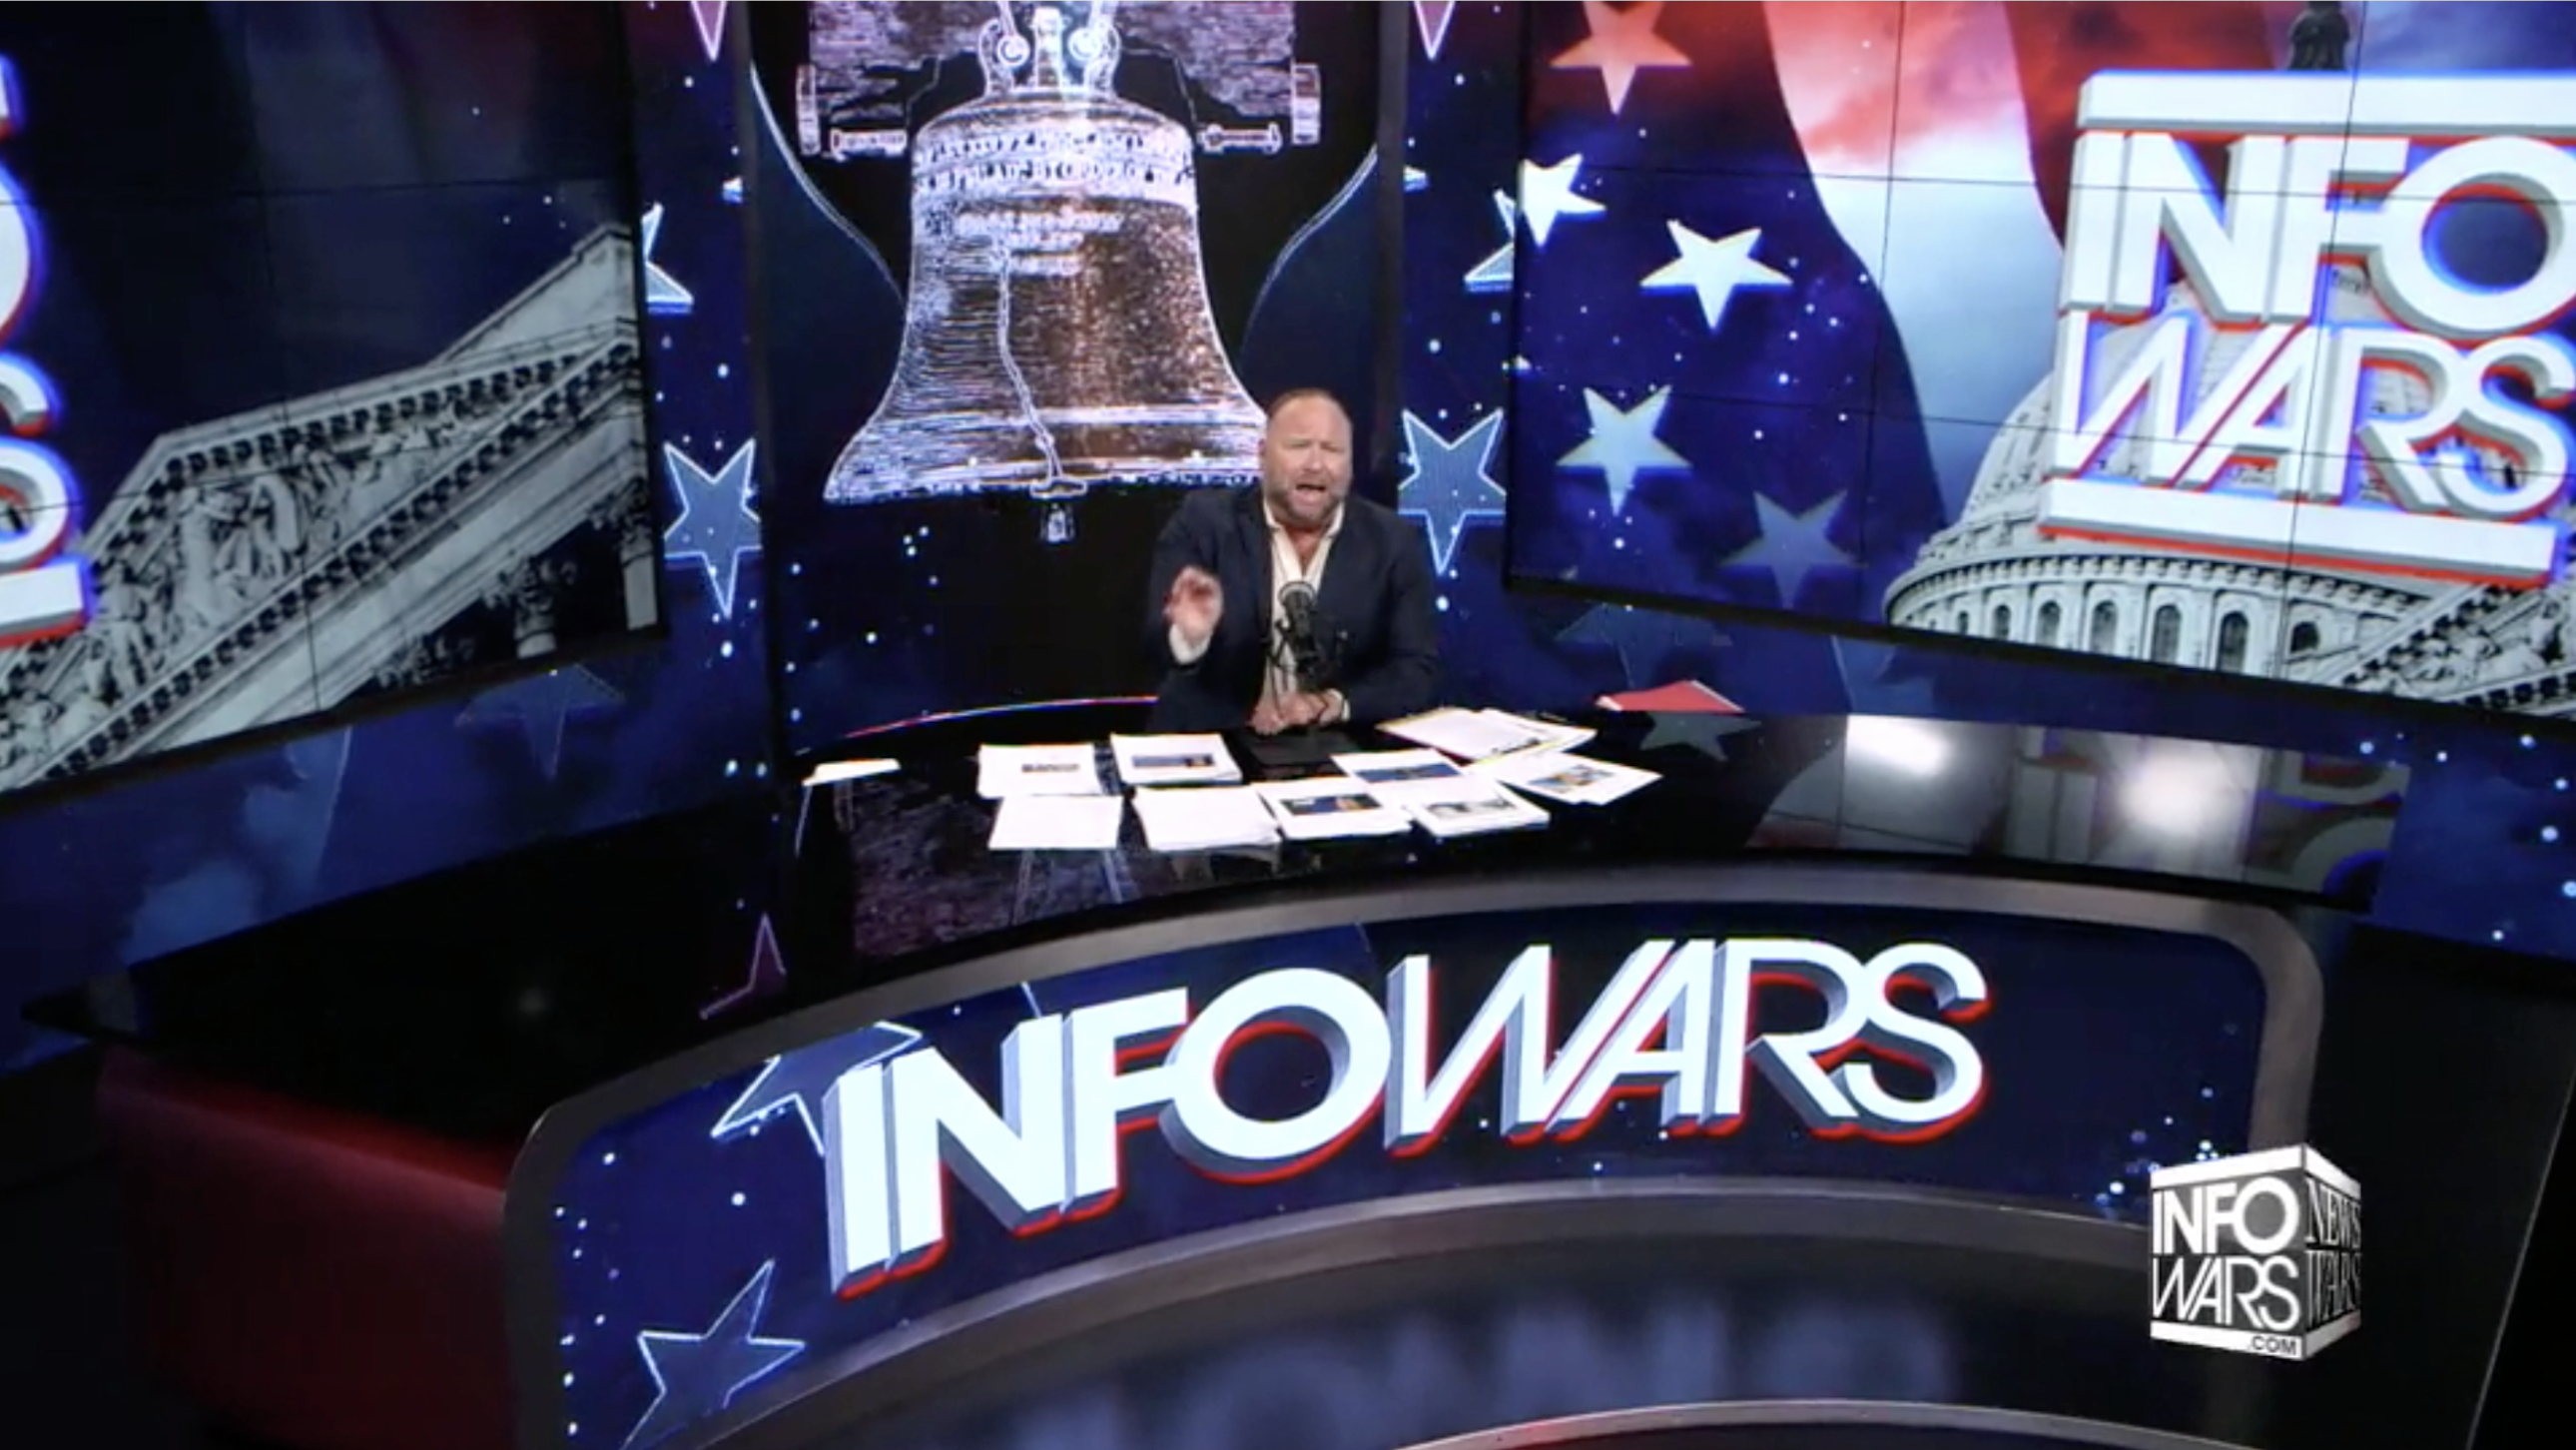 Alex Jones Infowars Studio EXZM Zack Mount November 30th 2020